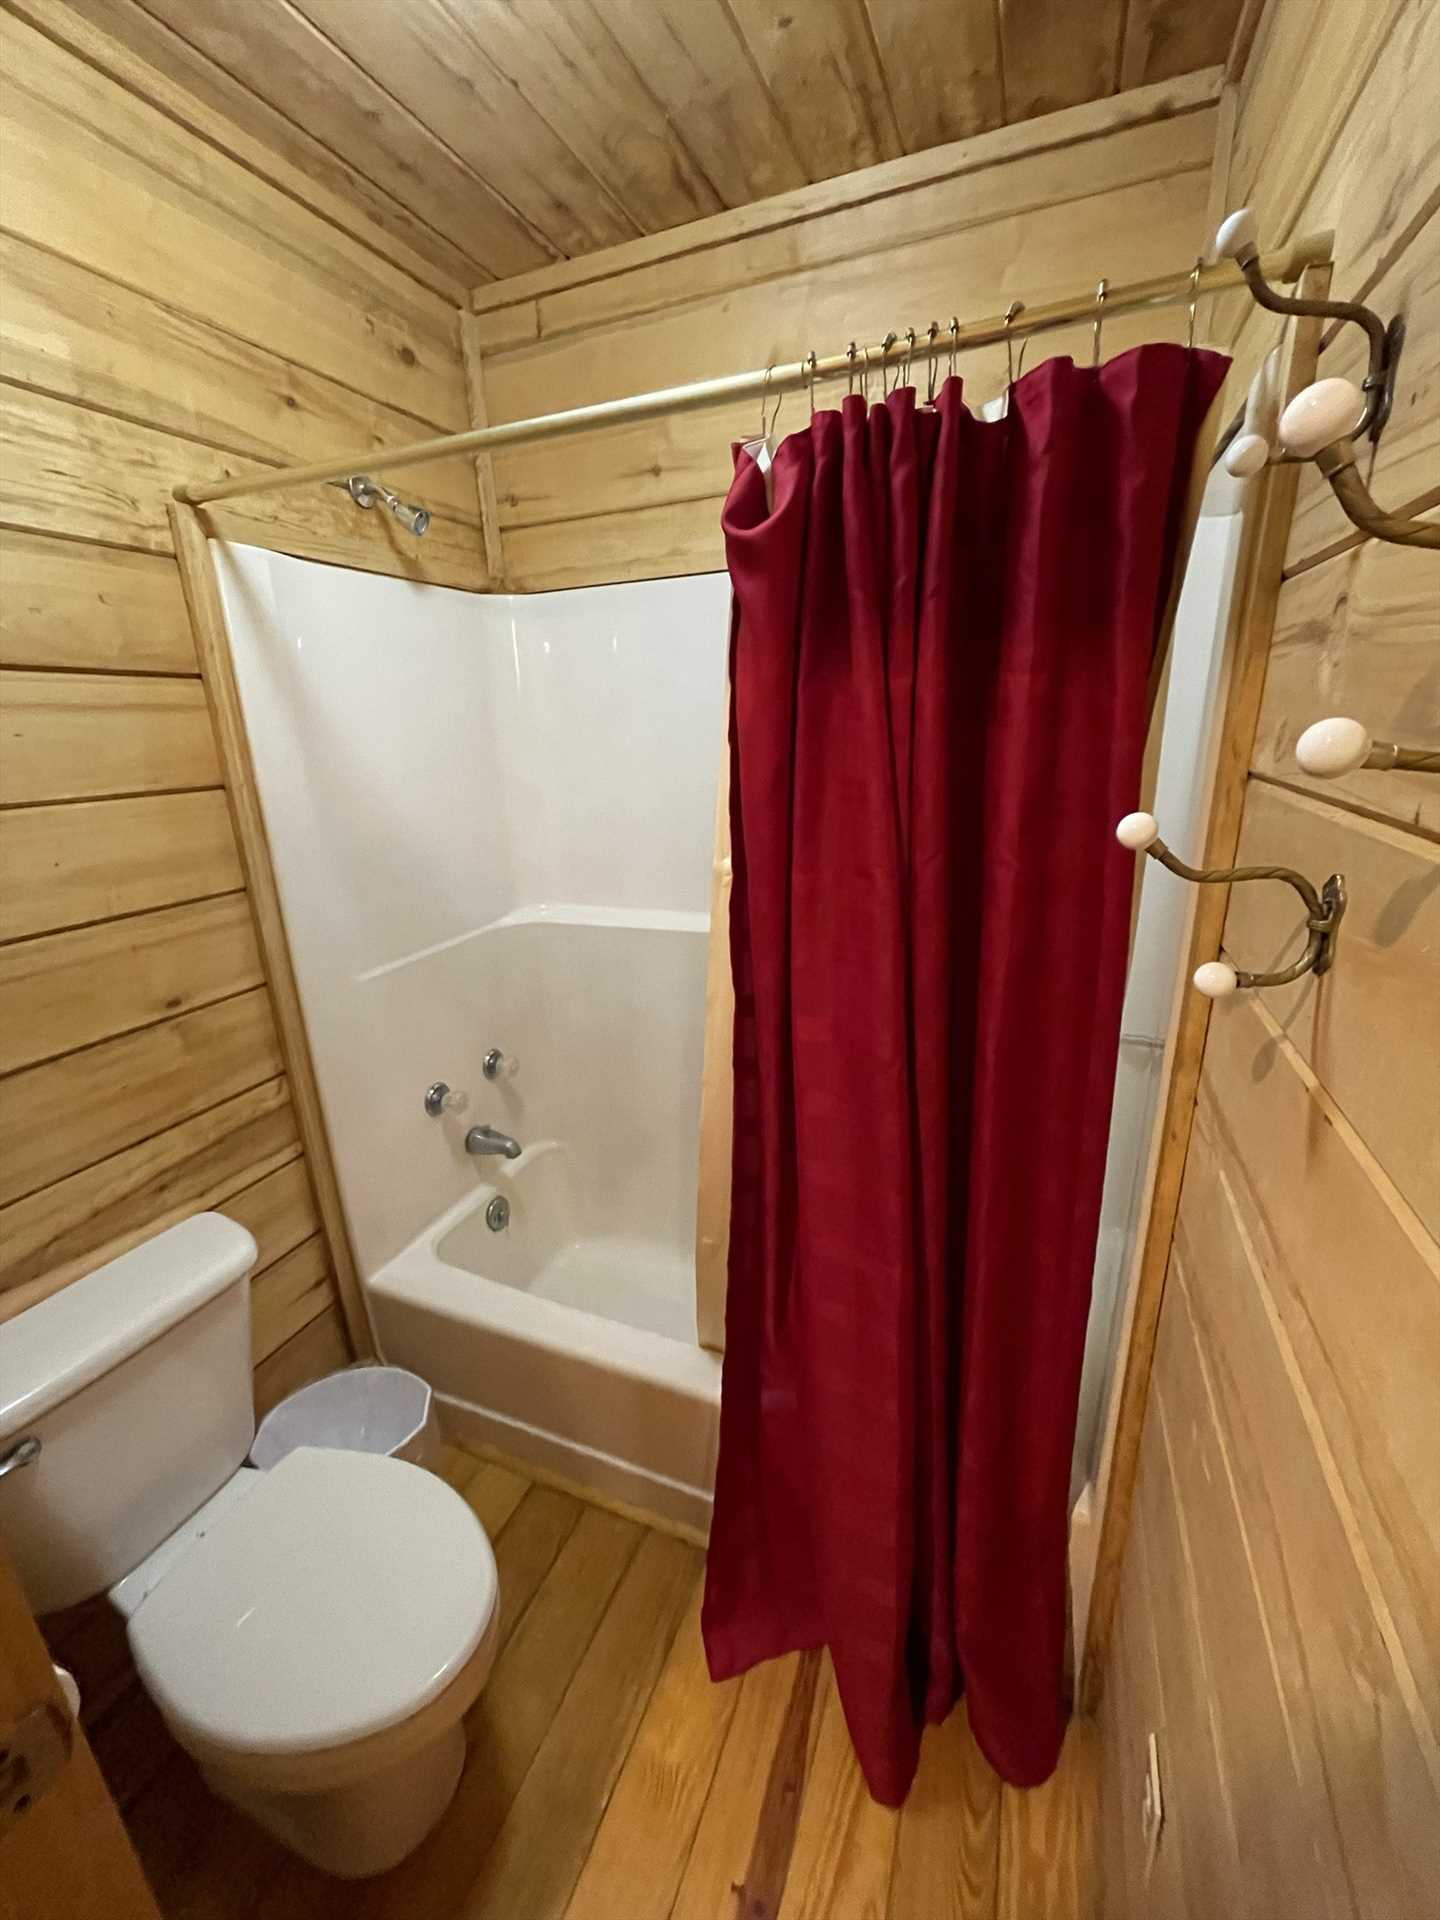 With two bathrooms for six guests, there'll be no standing in line! Both baths include a spotlessly-clean tub and shower combo.